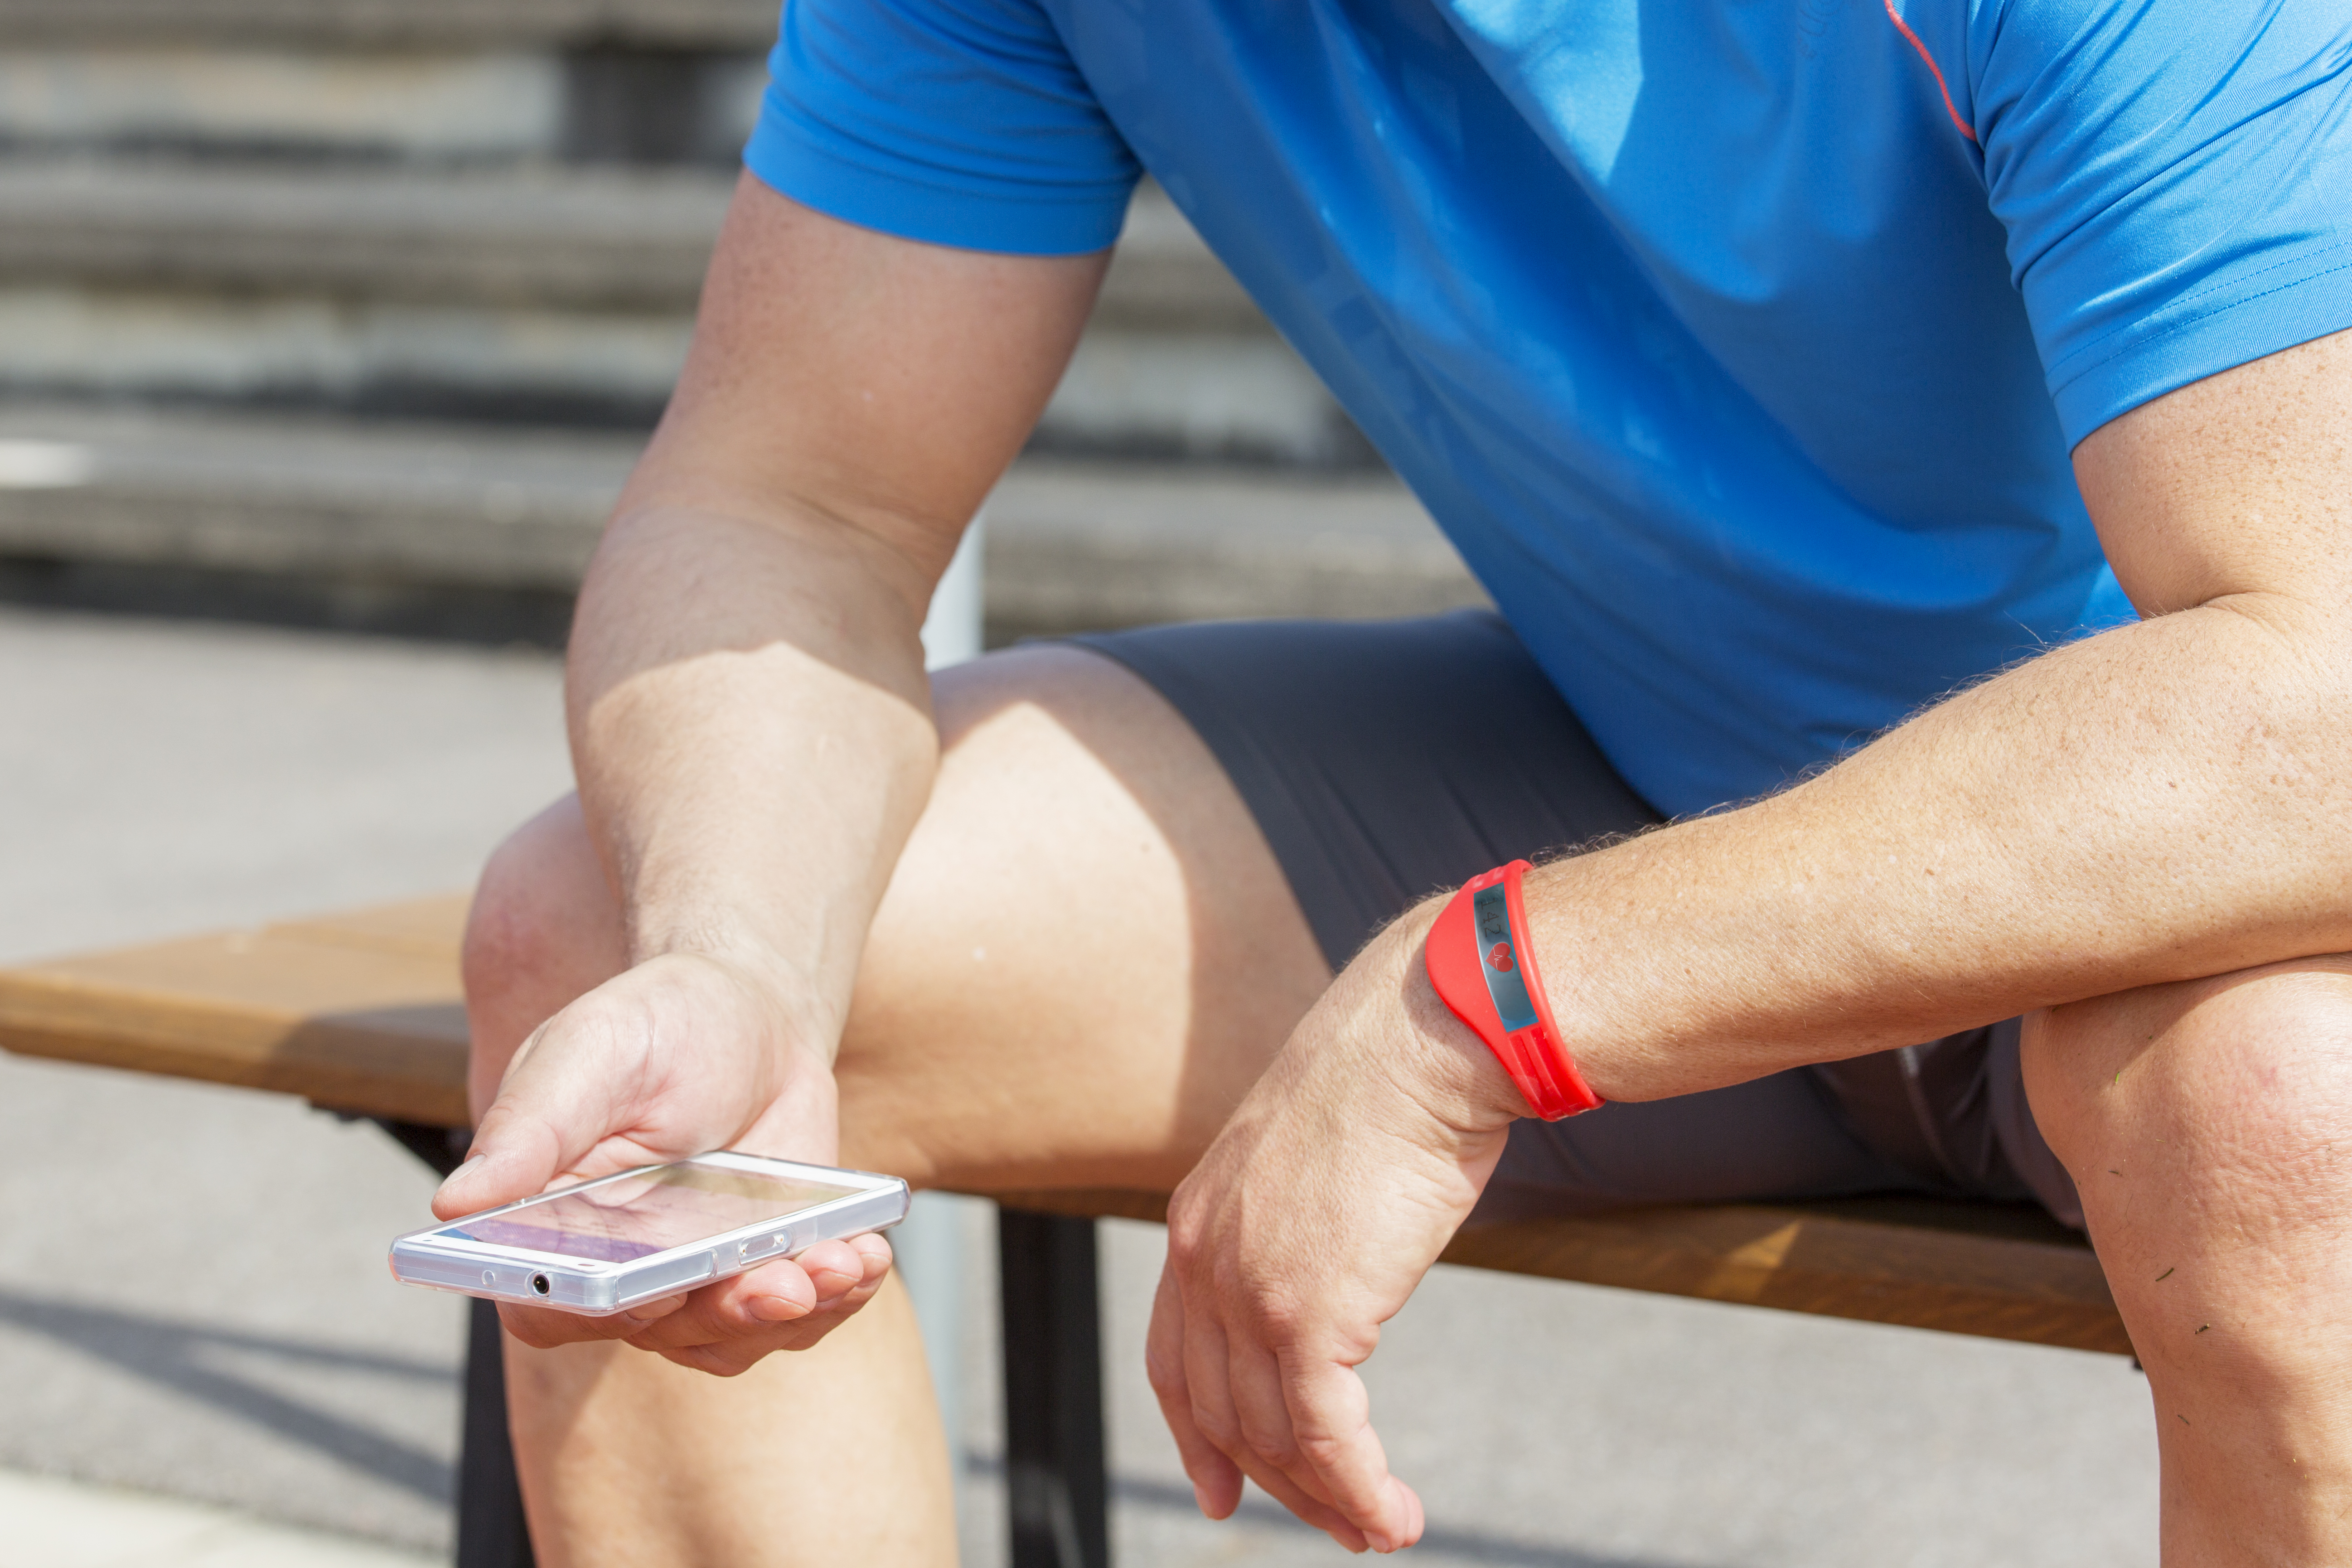 Athlete sitting down checking their phone